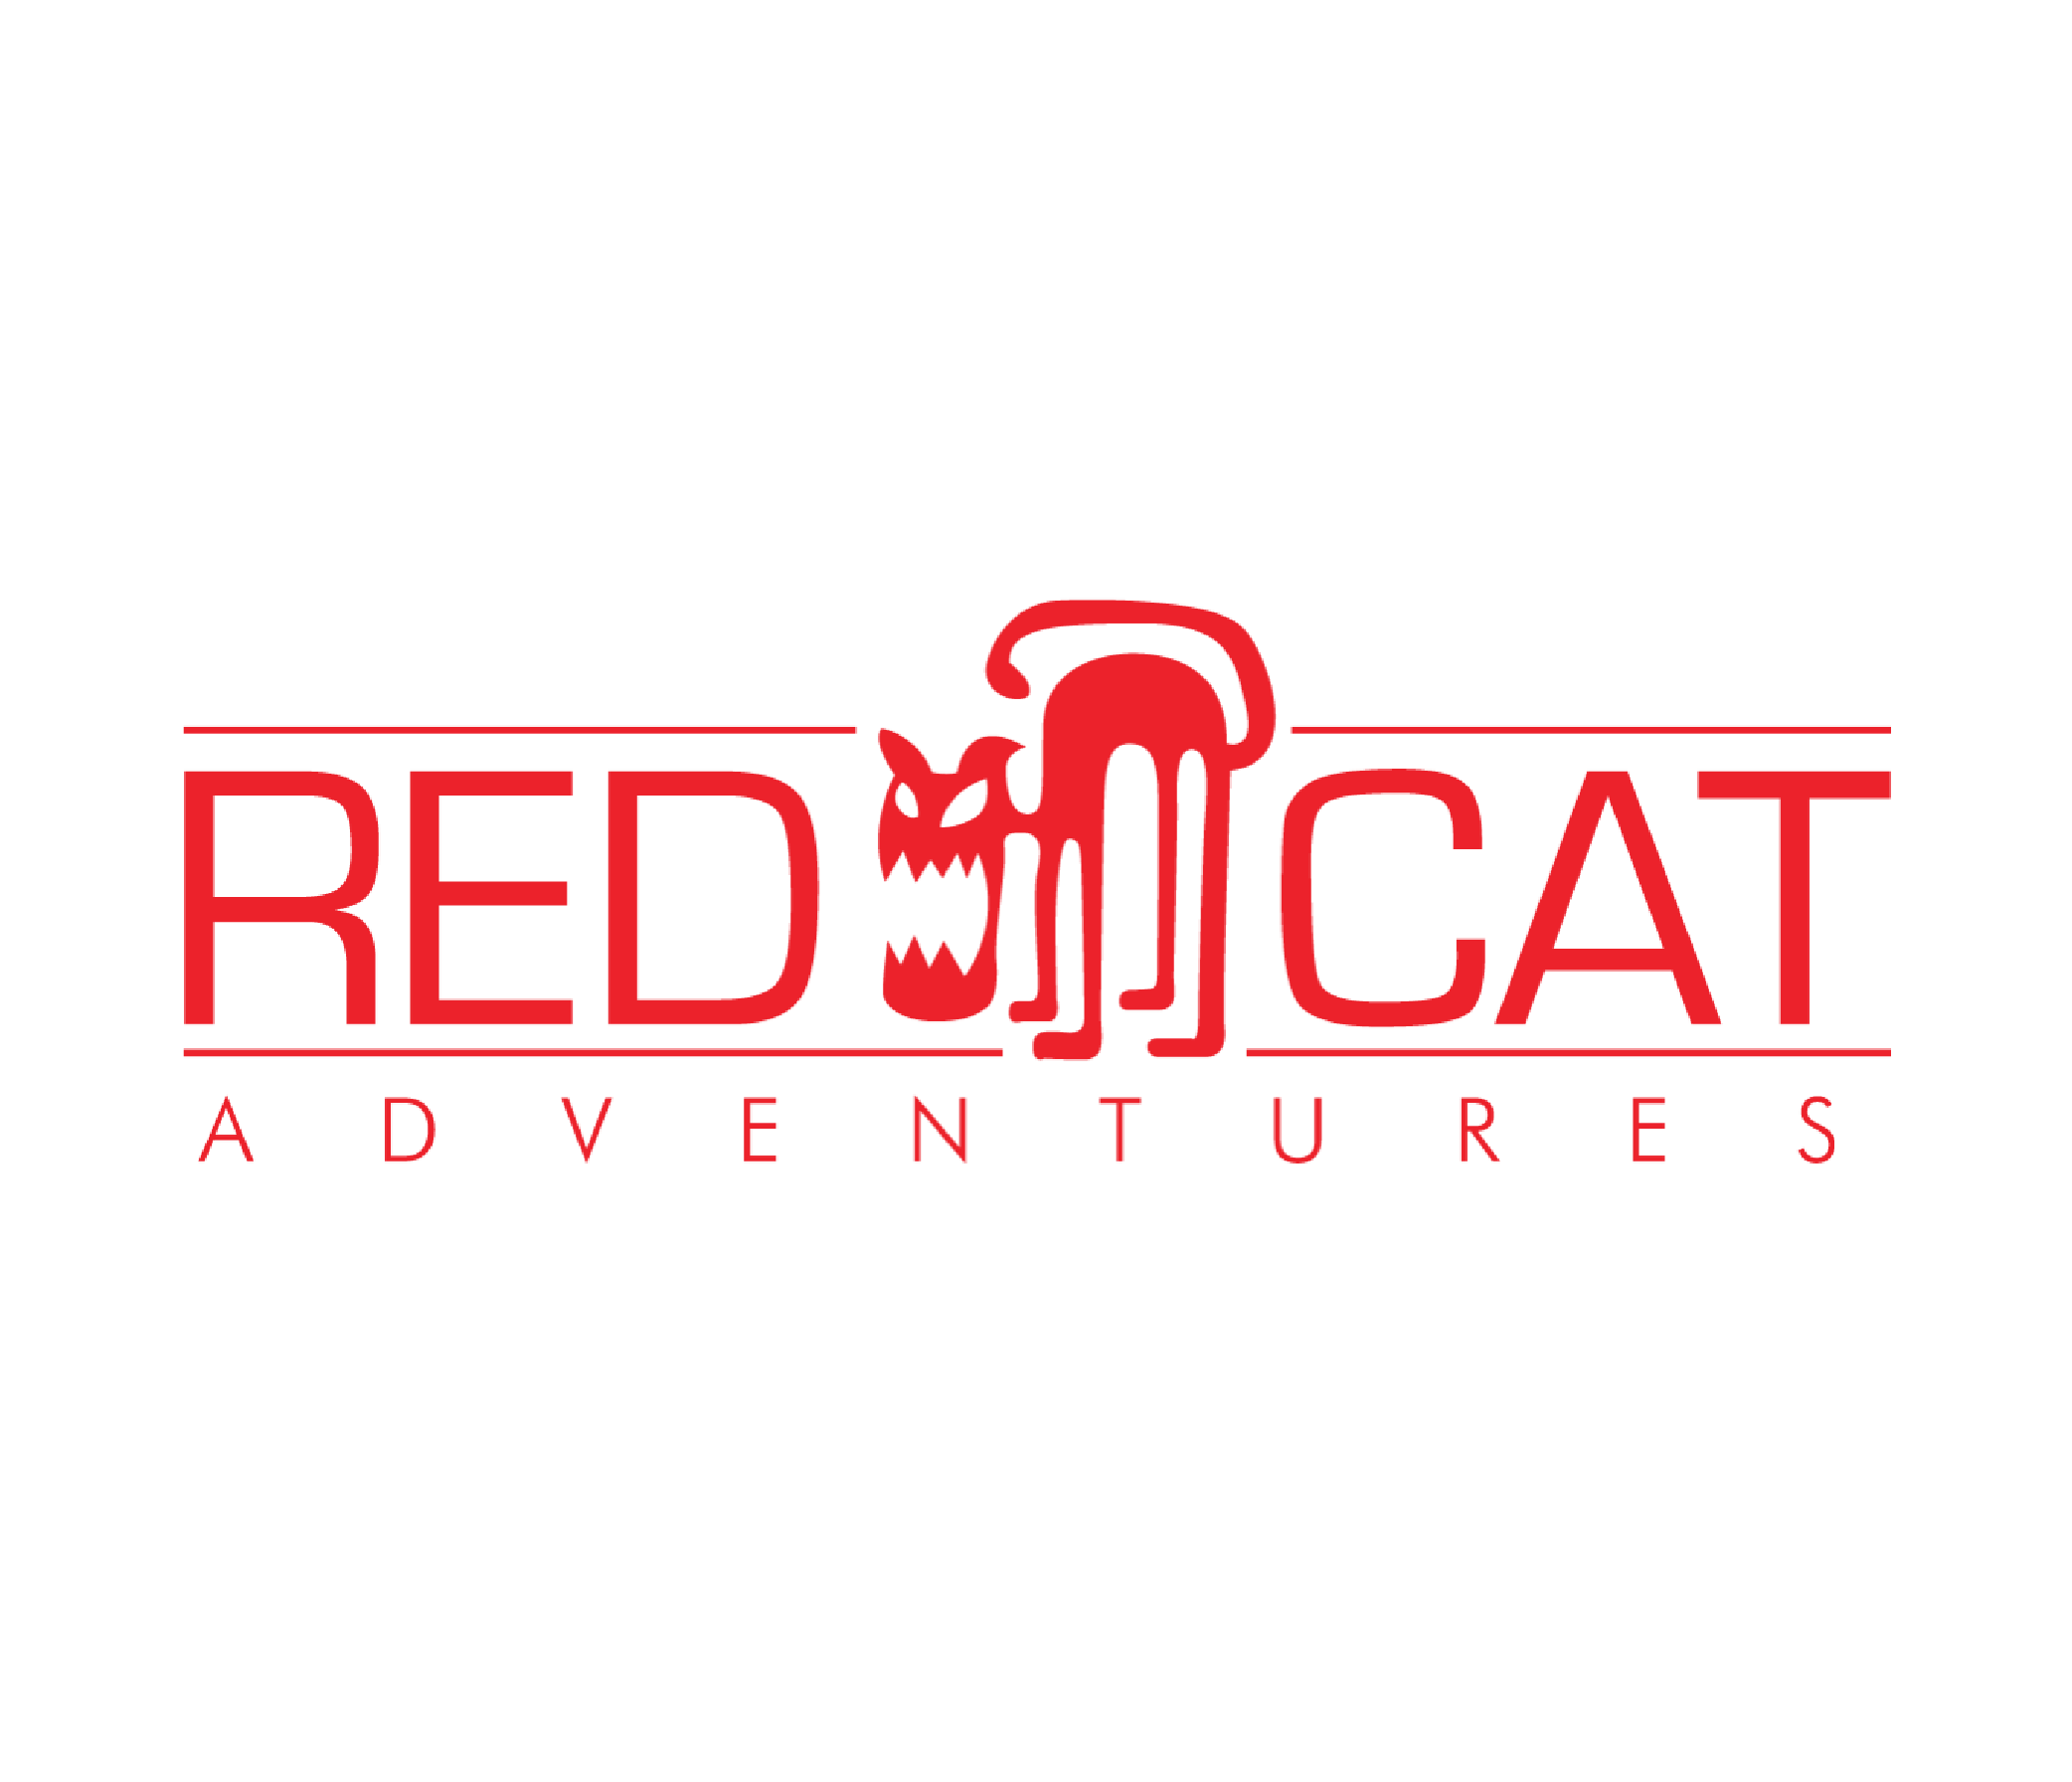 Red Cat Adventures